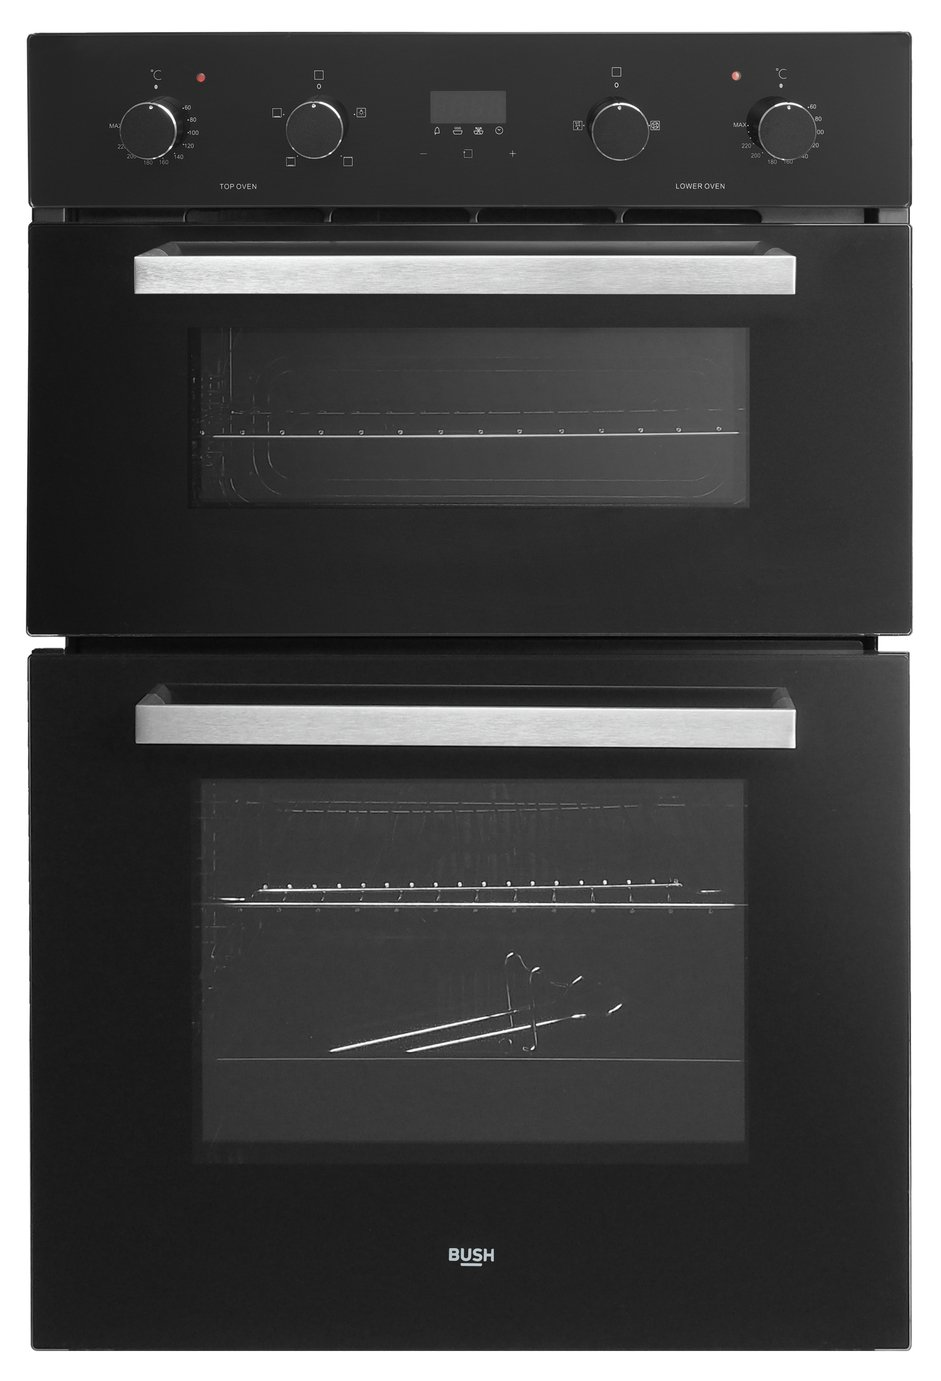 Bush AWBBDFO Built In Double Electric Oven - Black